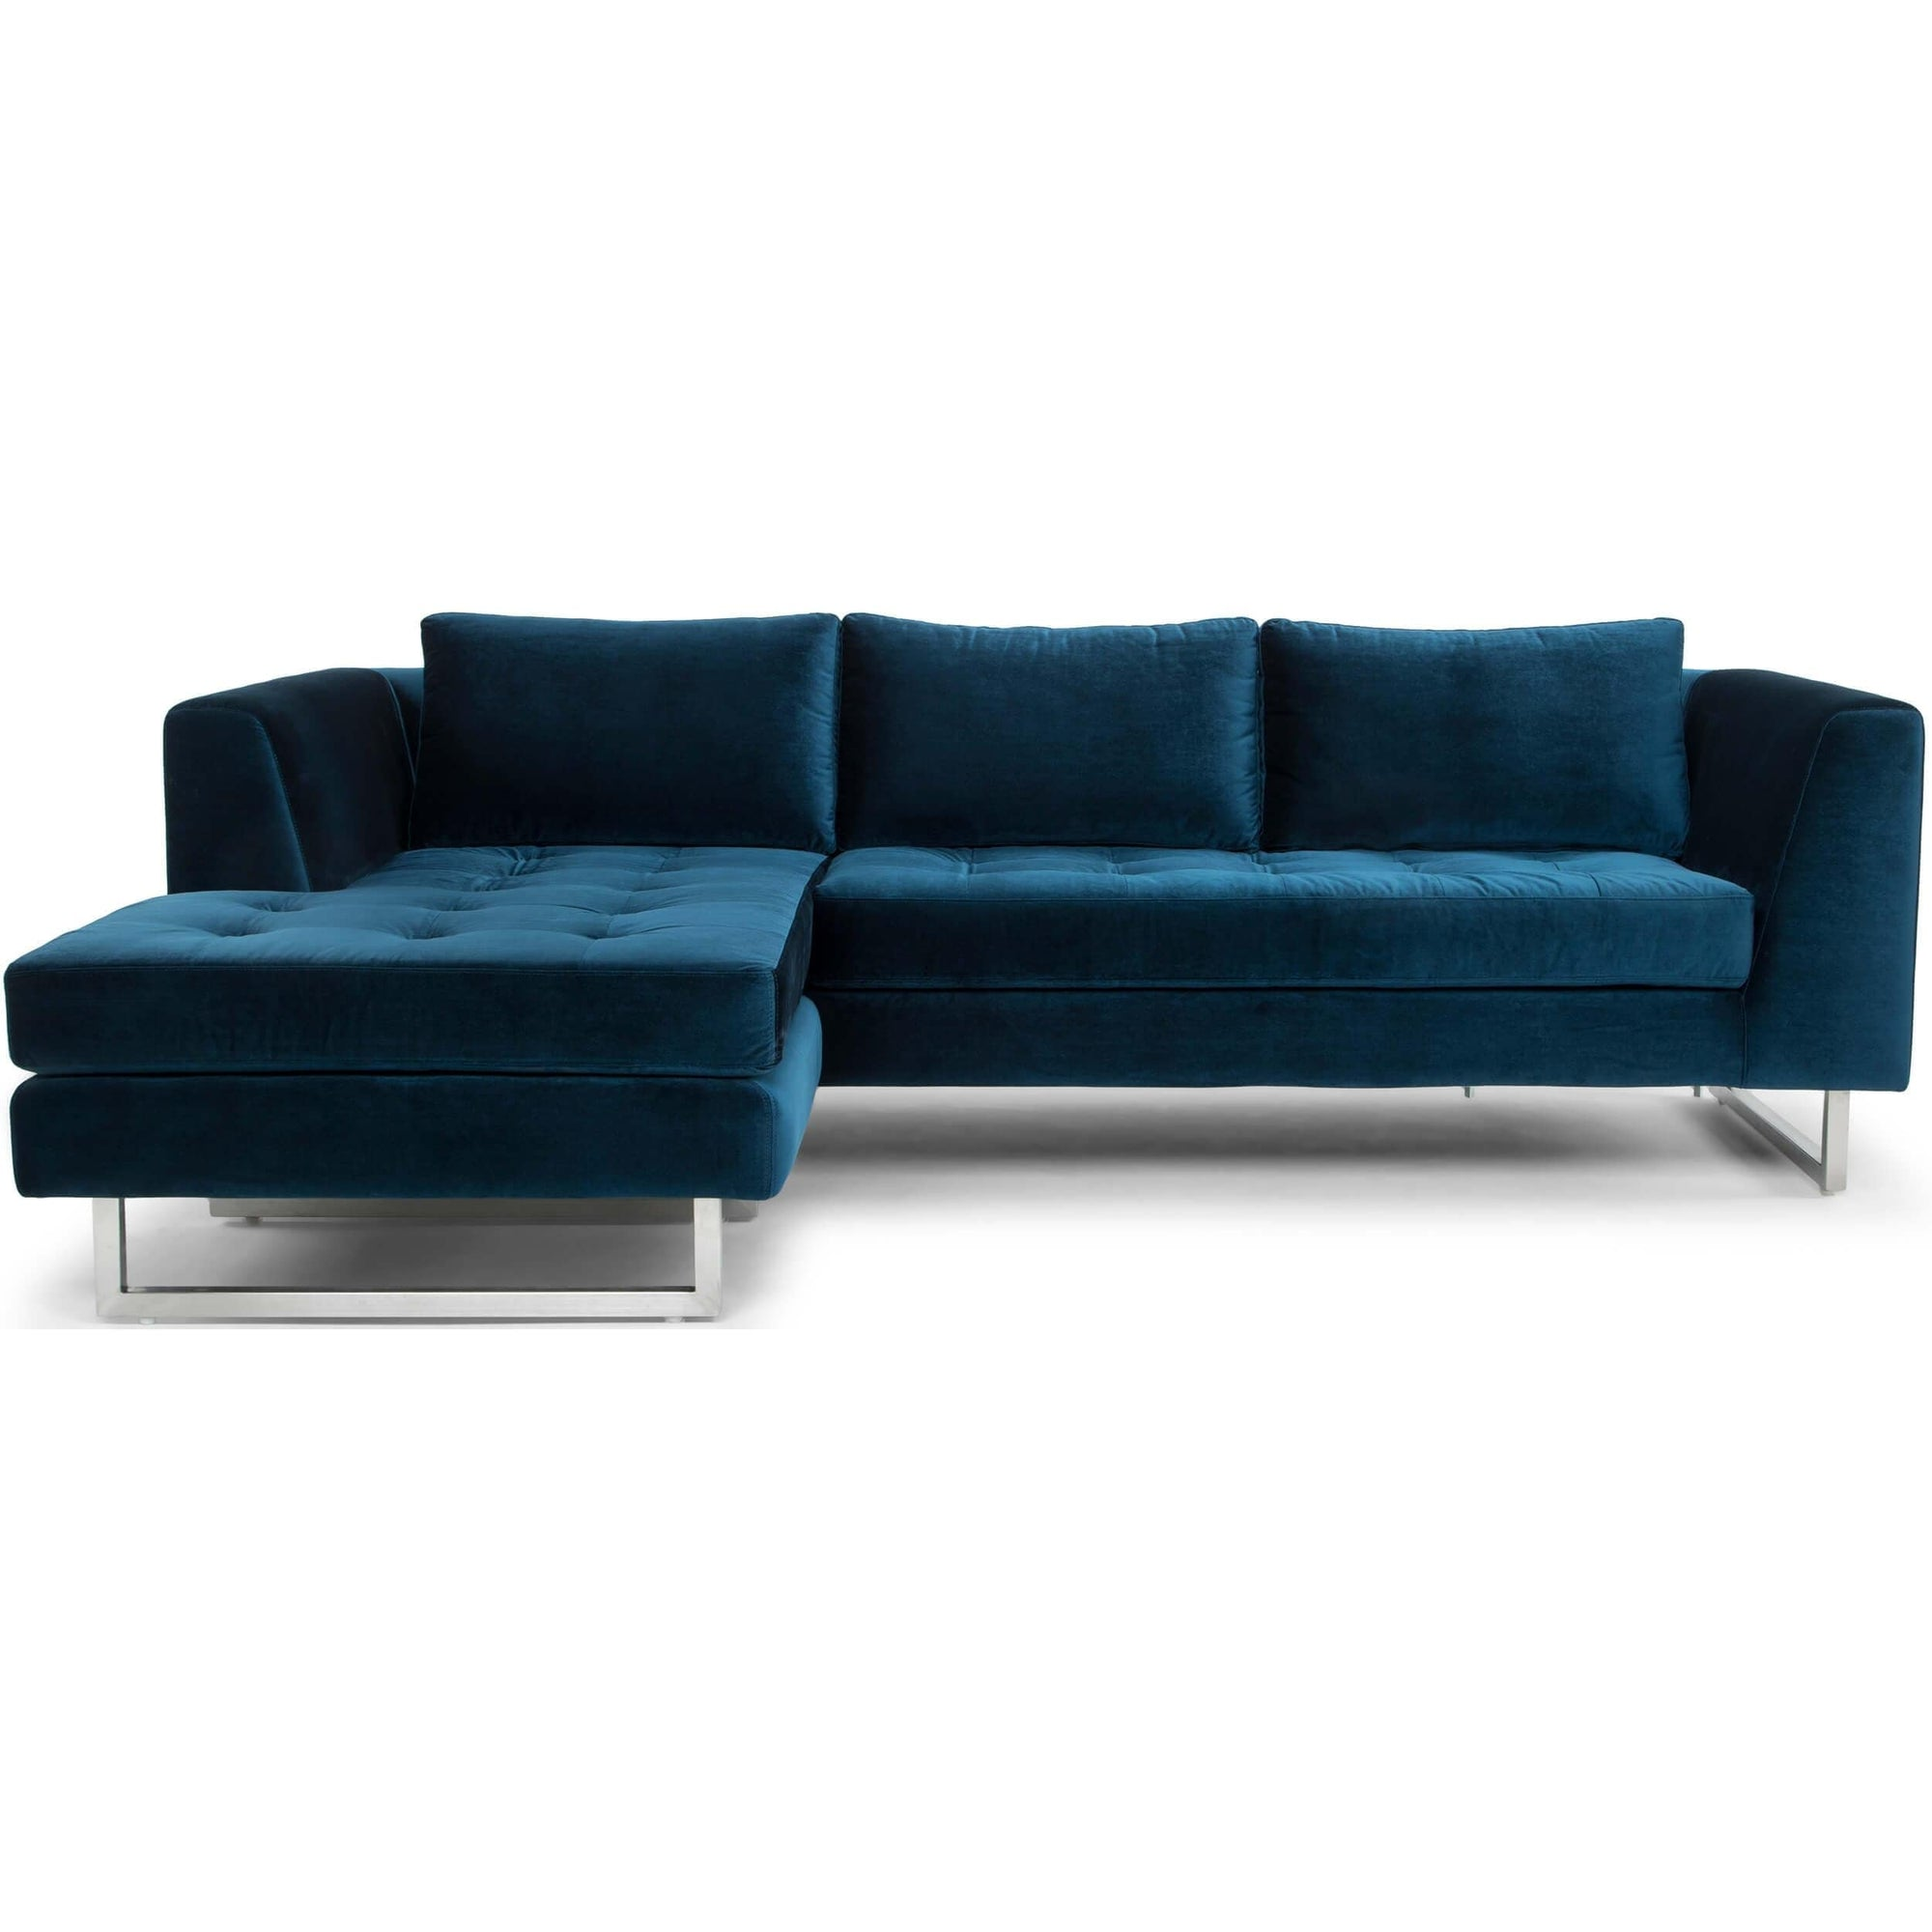 Fabulous Matthew Sectional Midnight Blue High Fashion Home Ibusinesslaw Wood Chair Design Ideas Ibusinesslaworg